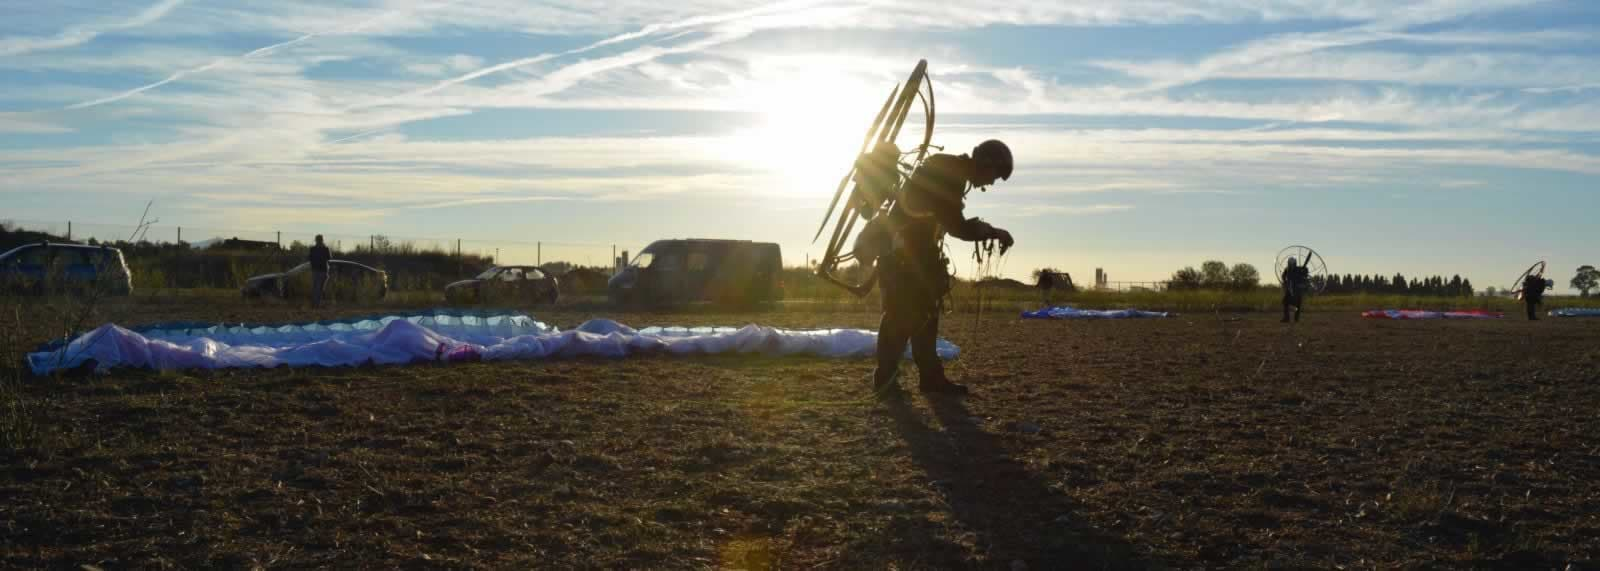 Paramotoring in Italy with SkySchool